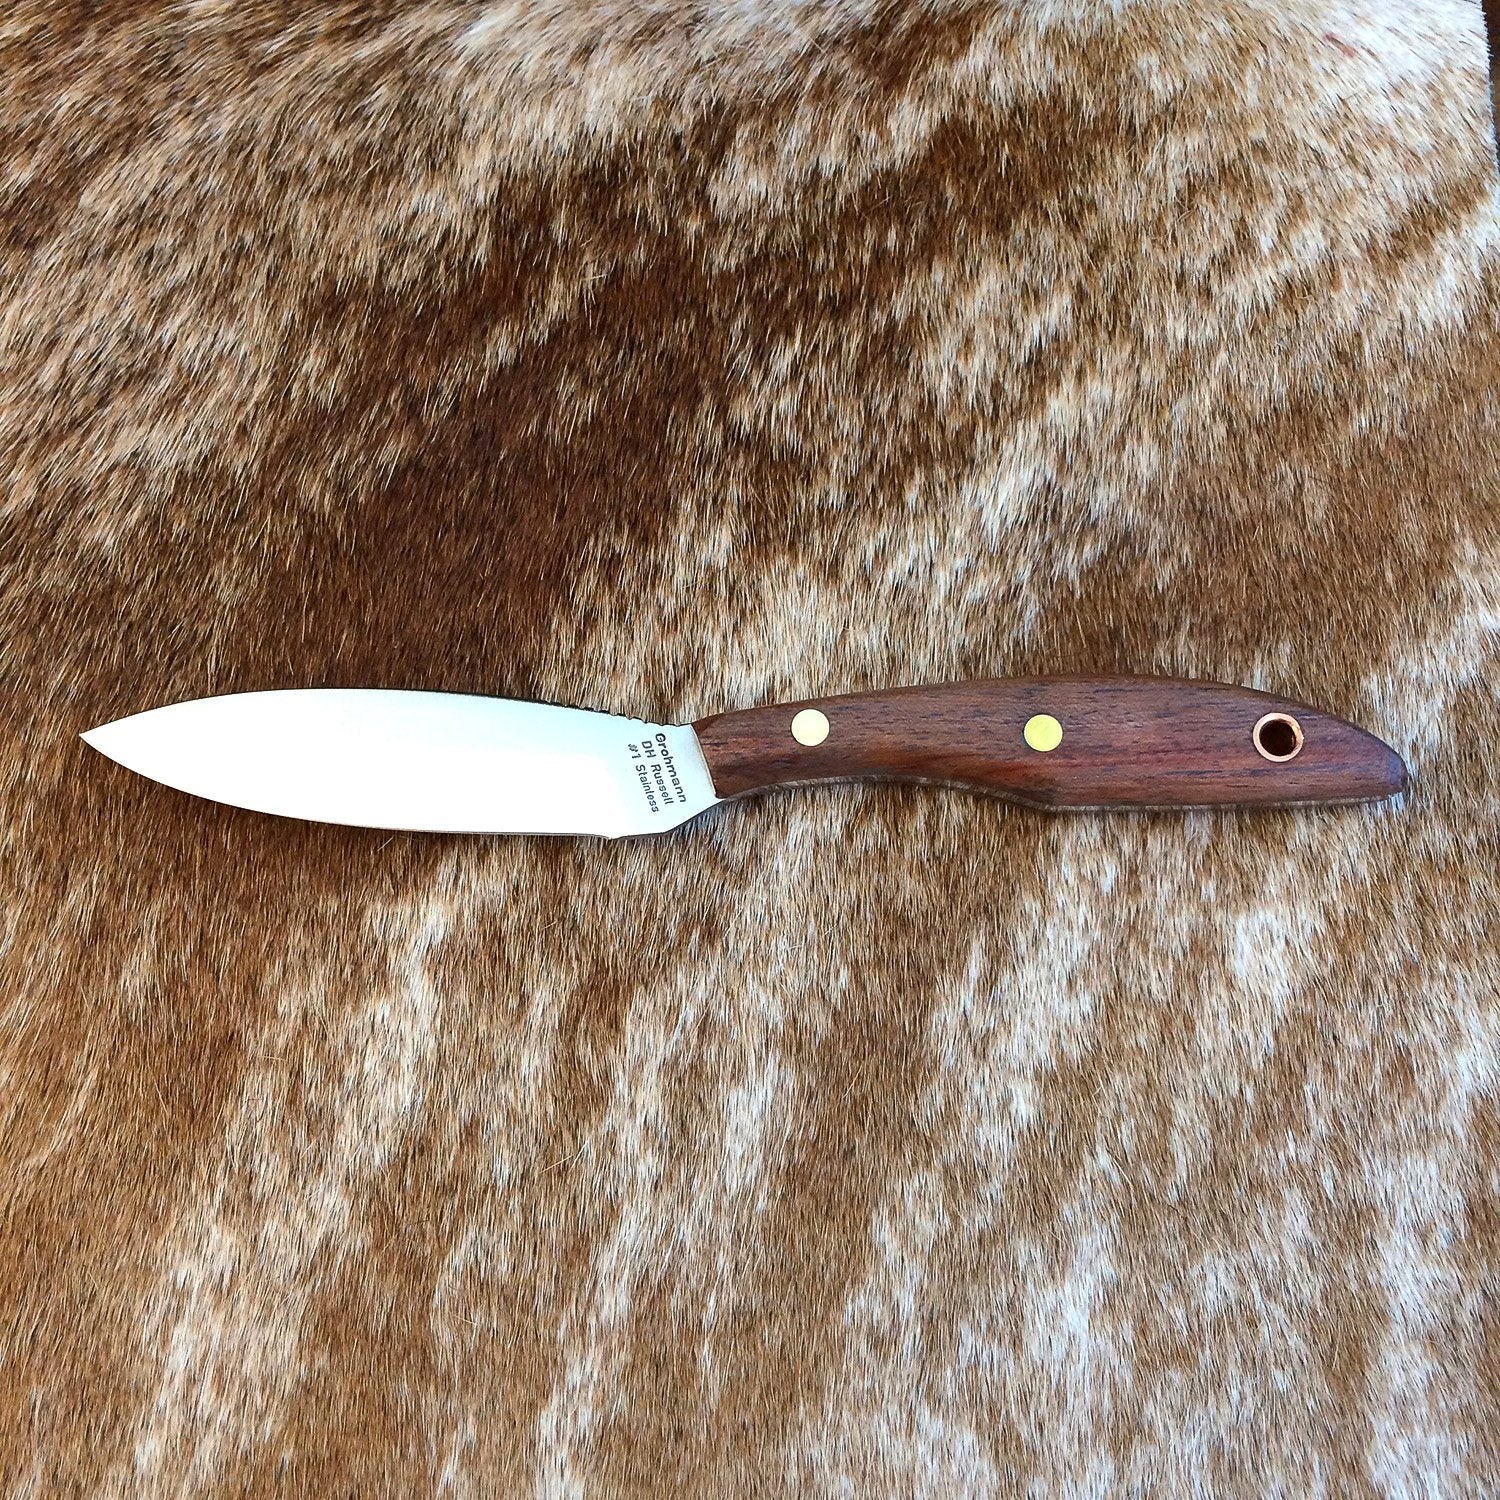 Grohmann D.H. Russell Belt Knife with Rosewood Handle